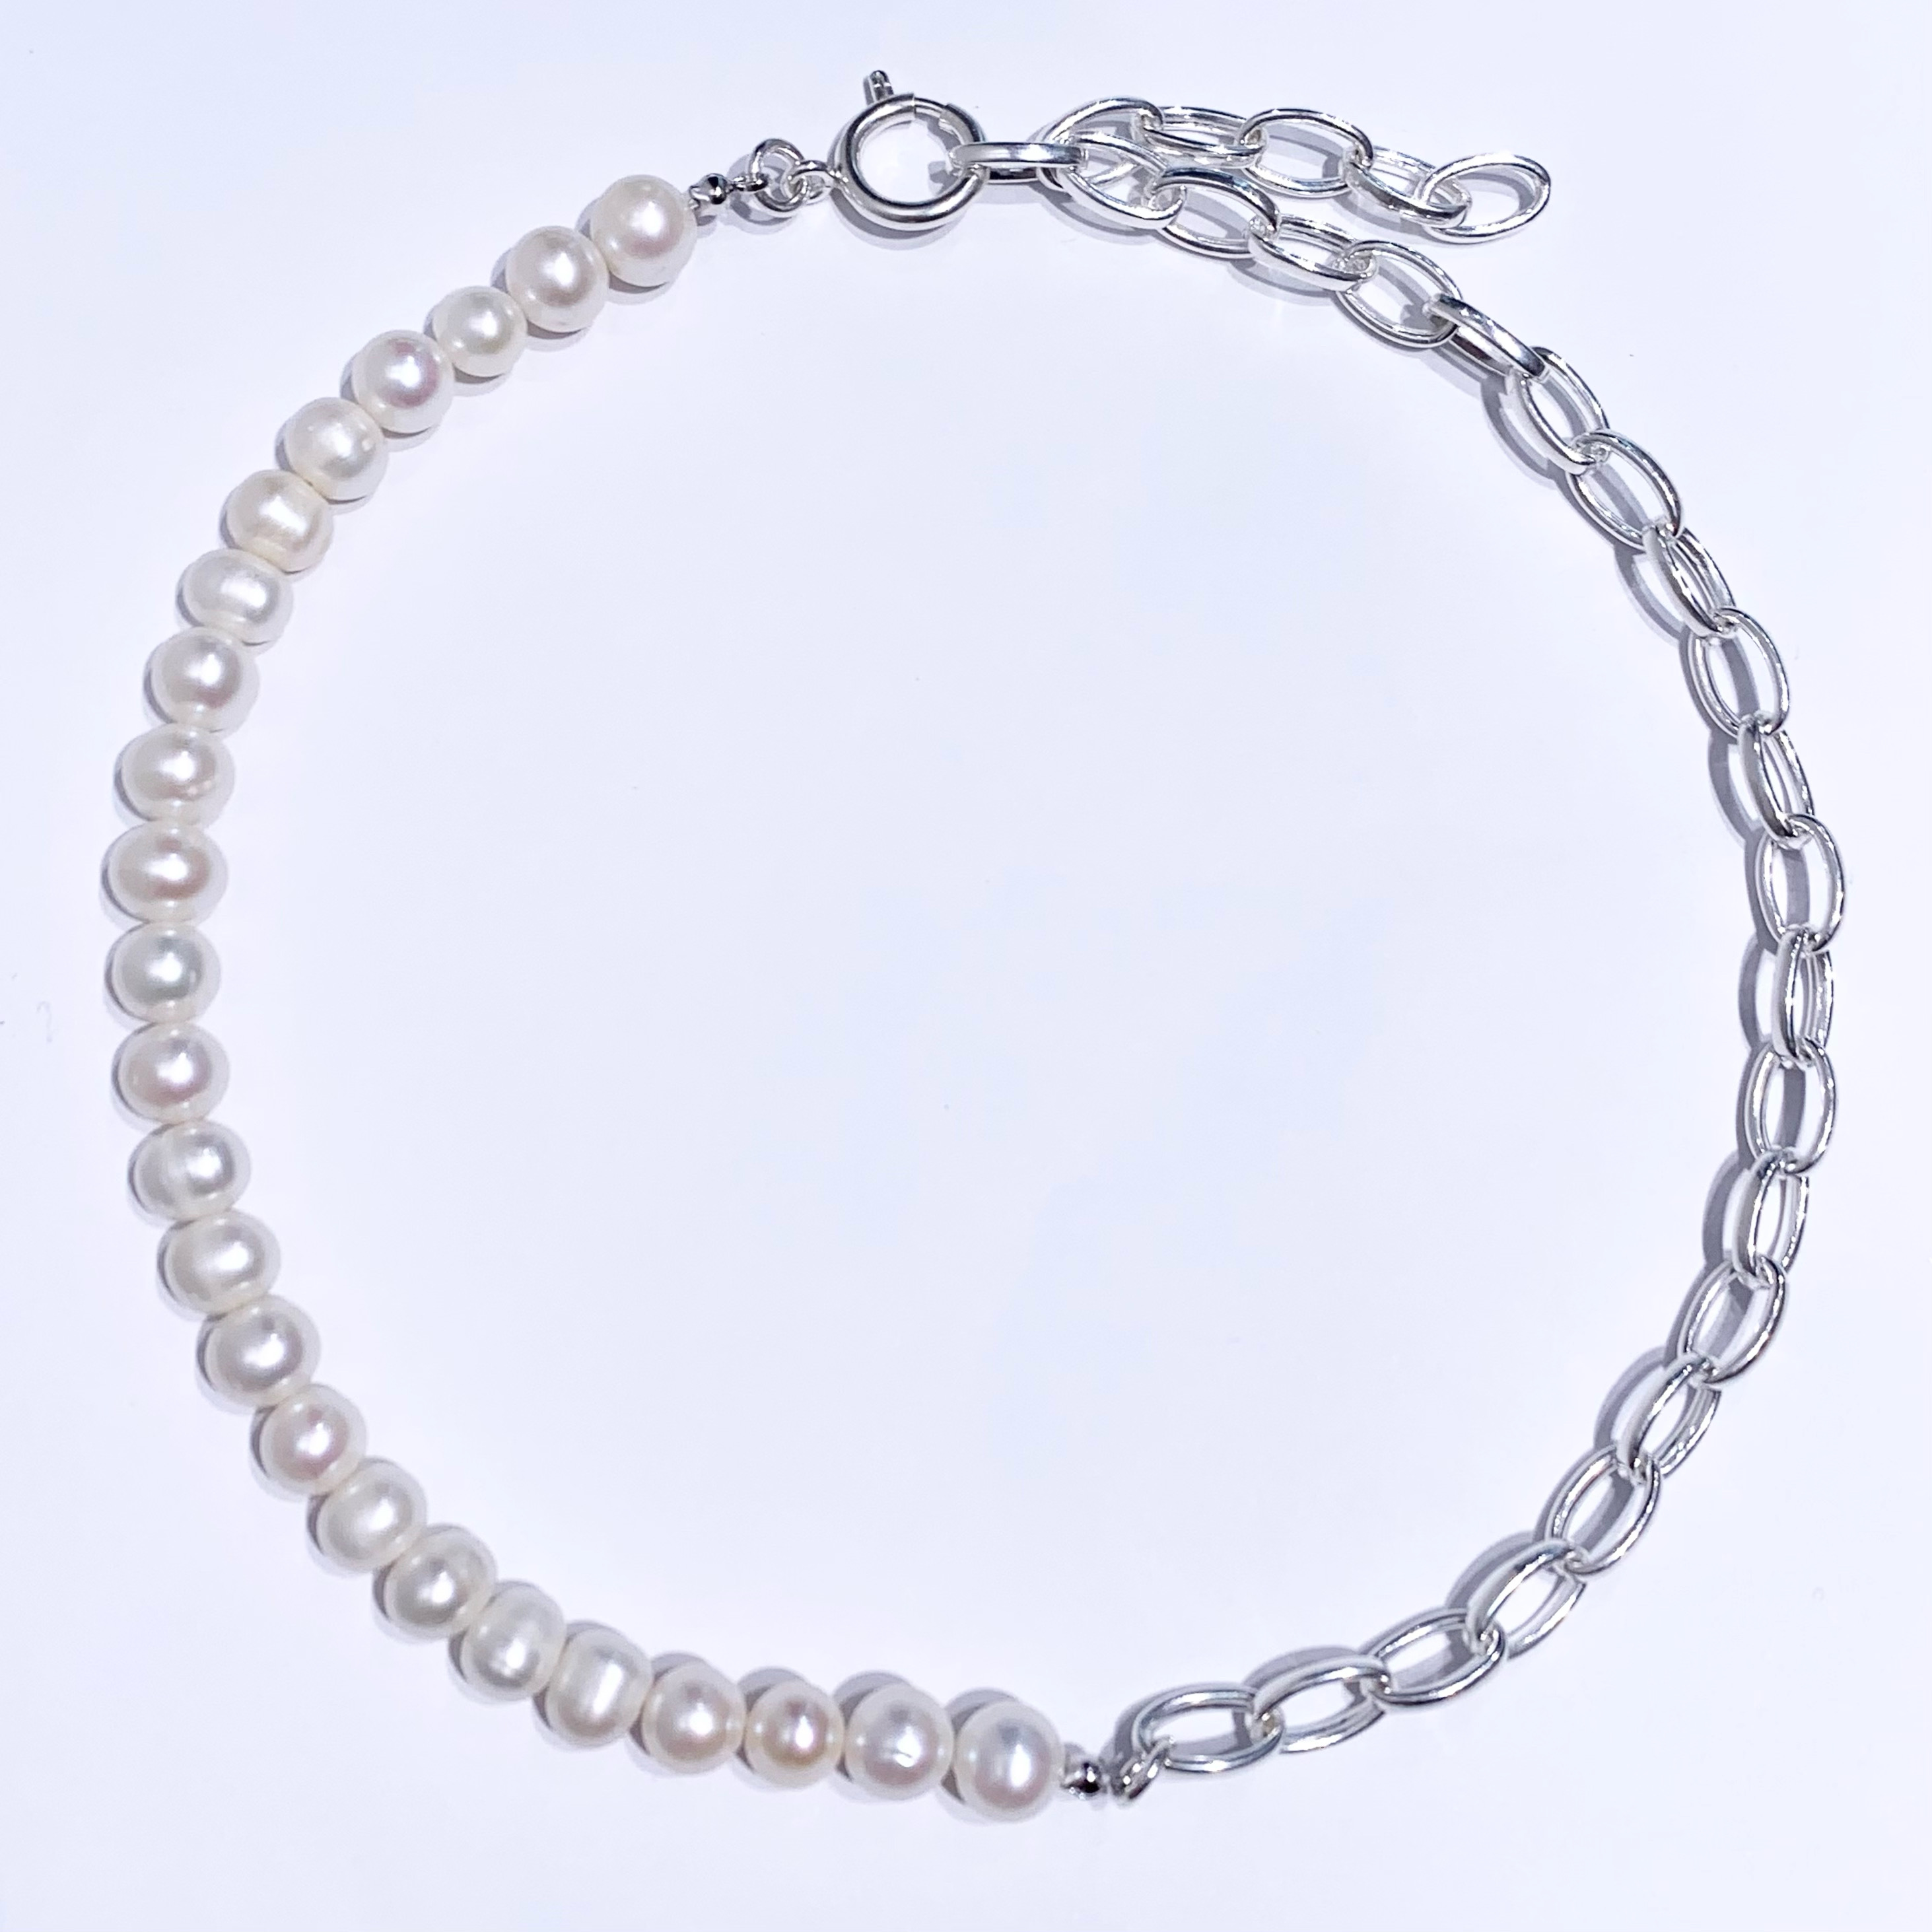 PEARL&CHAIN NECKLACE